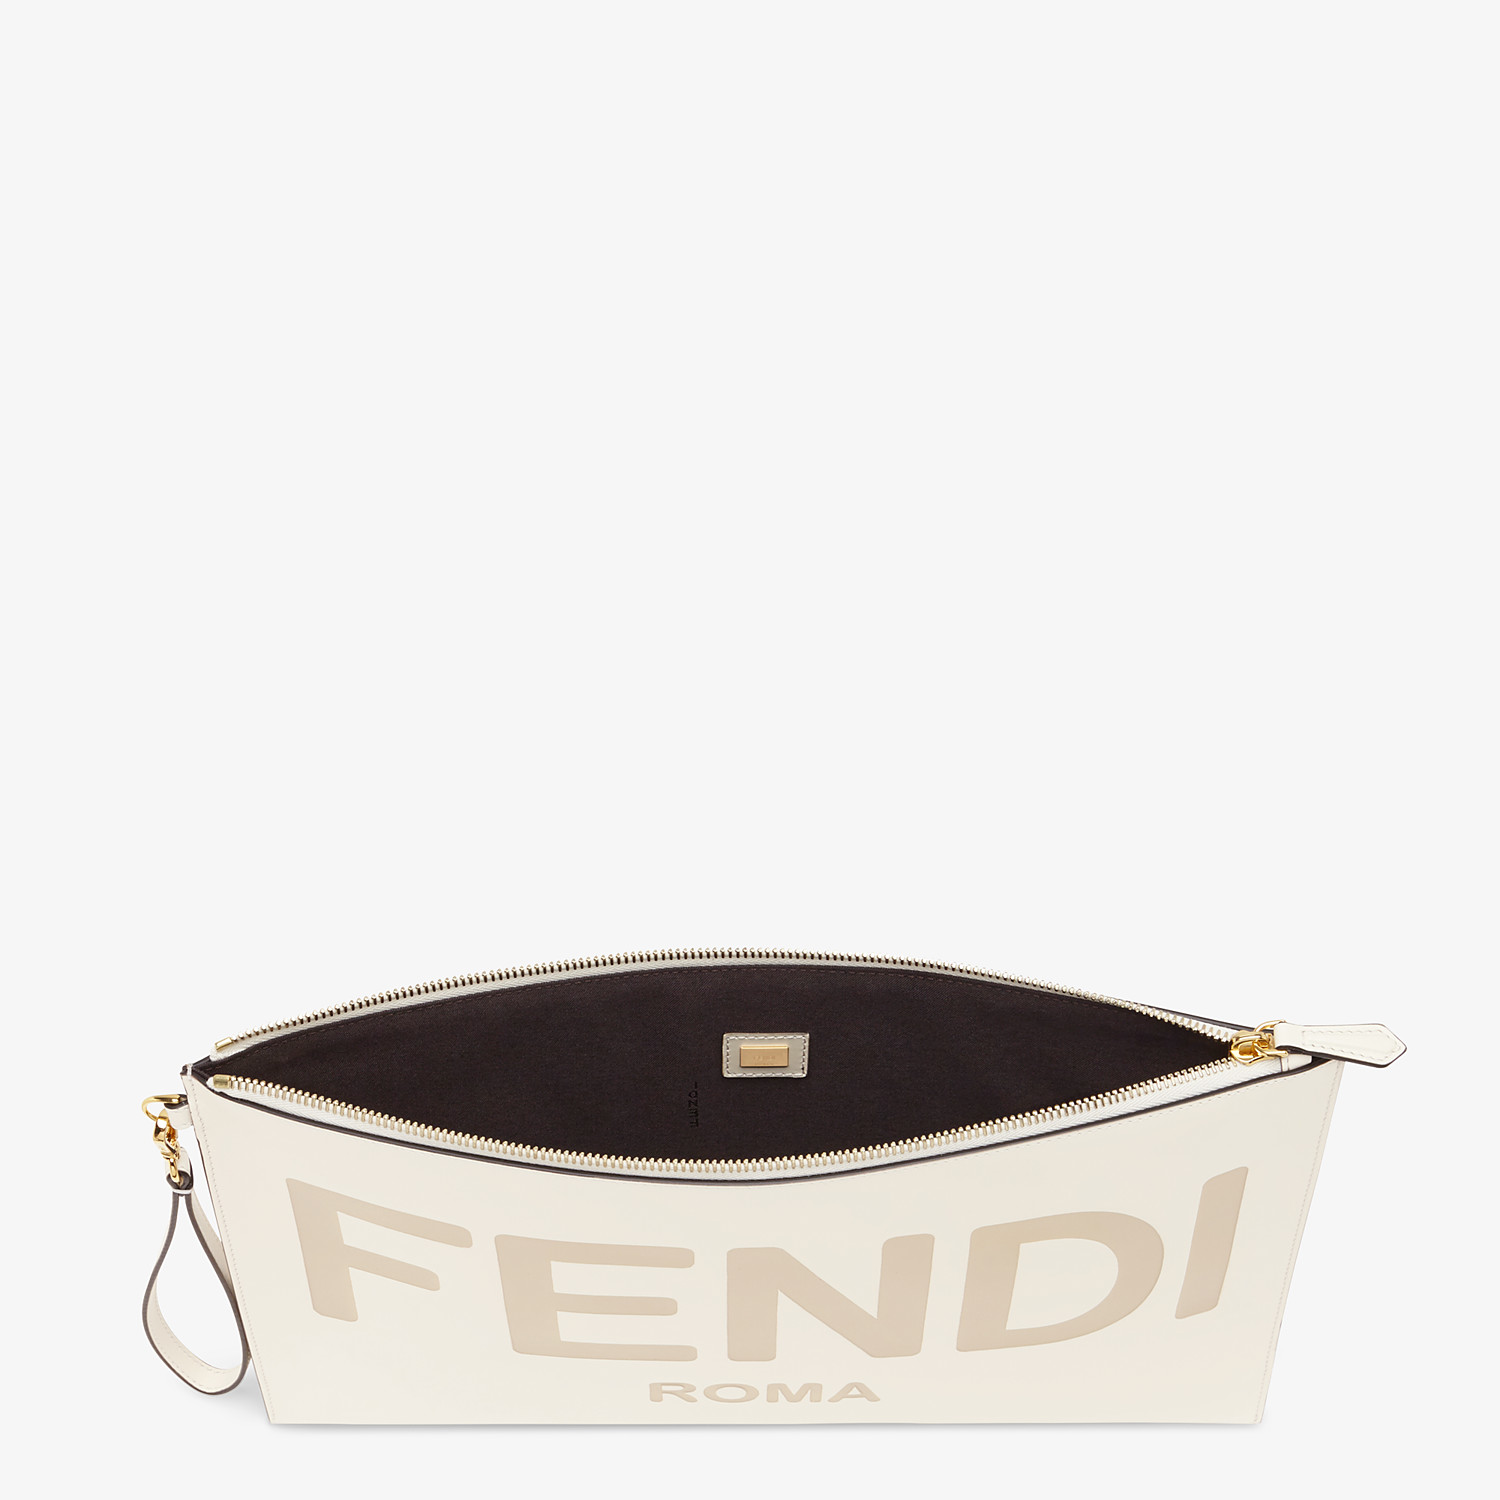 FENDI LARGE FLAT POUCH - White leather pouch - view 4 detail